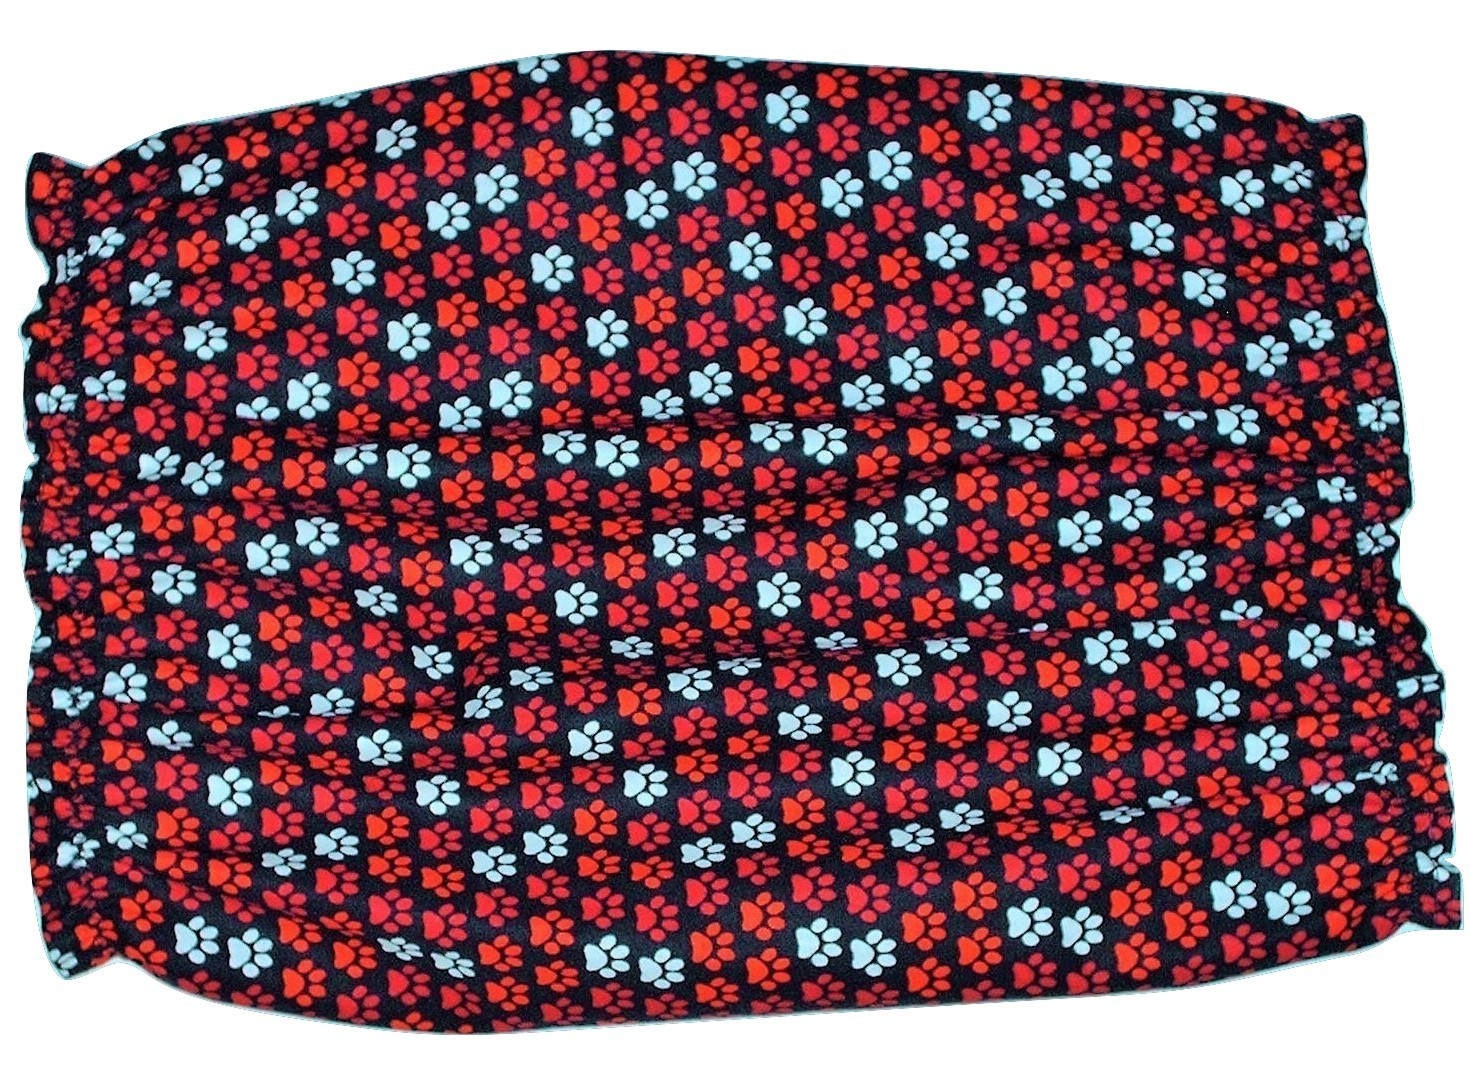 Dog Snood Black with Red White Paw Prints Cotton by Howlin Hounds Size Small